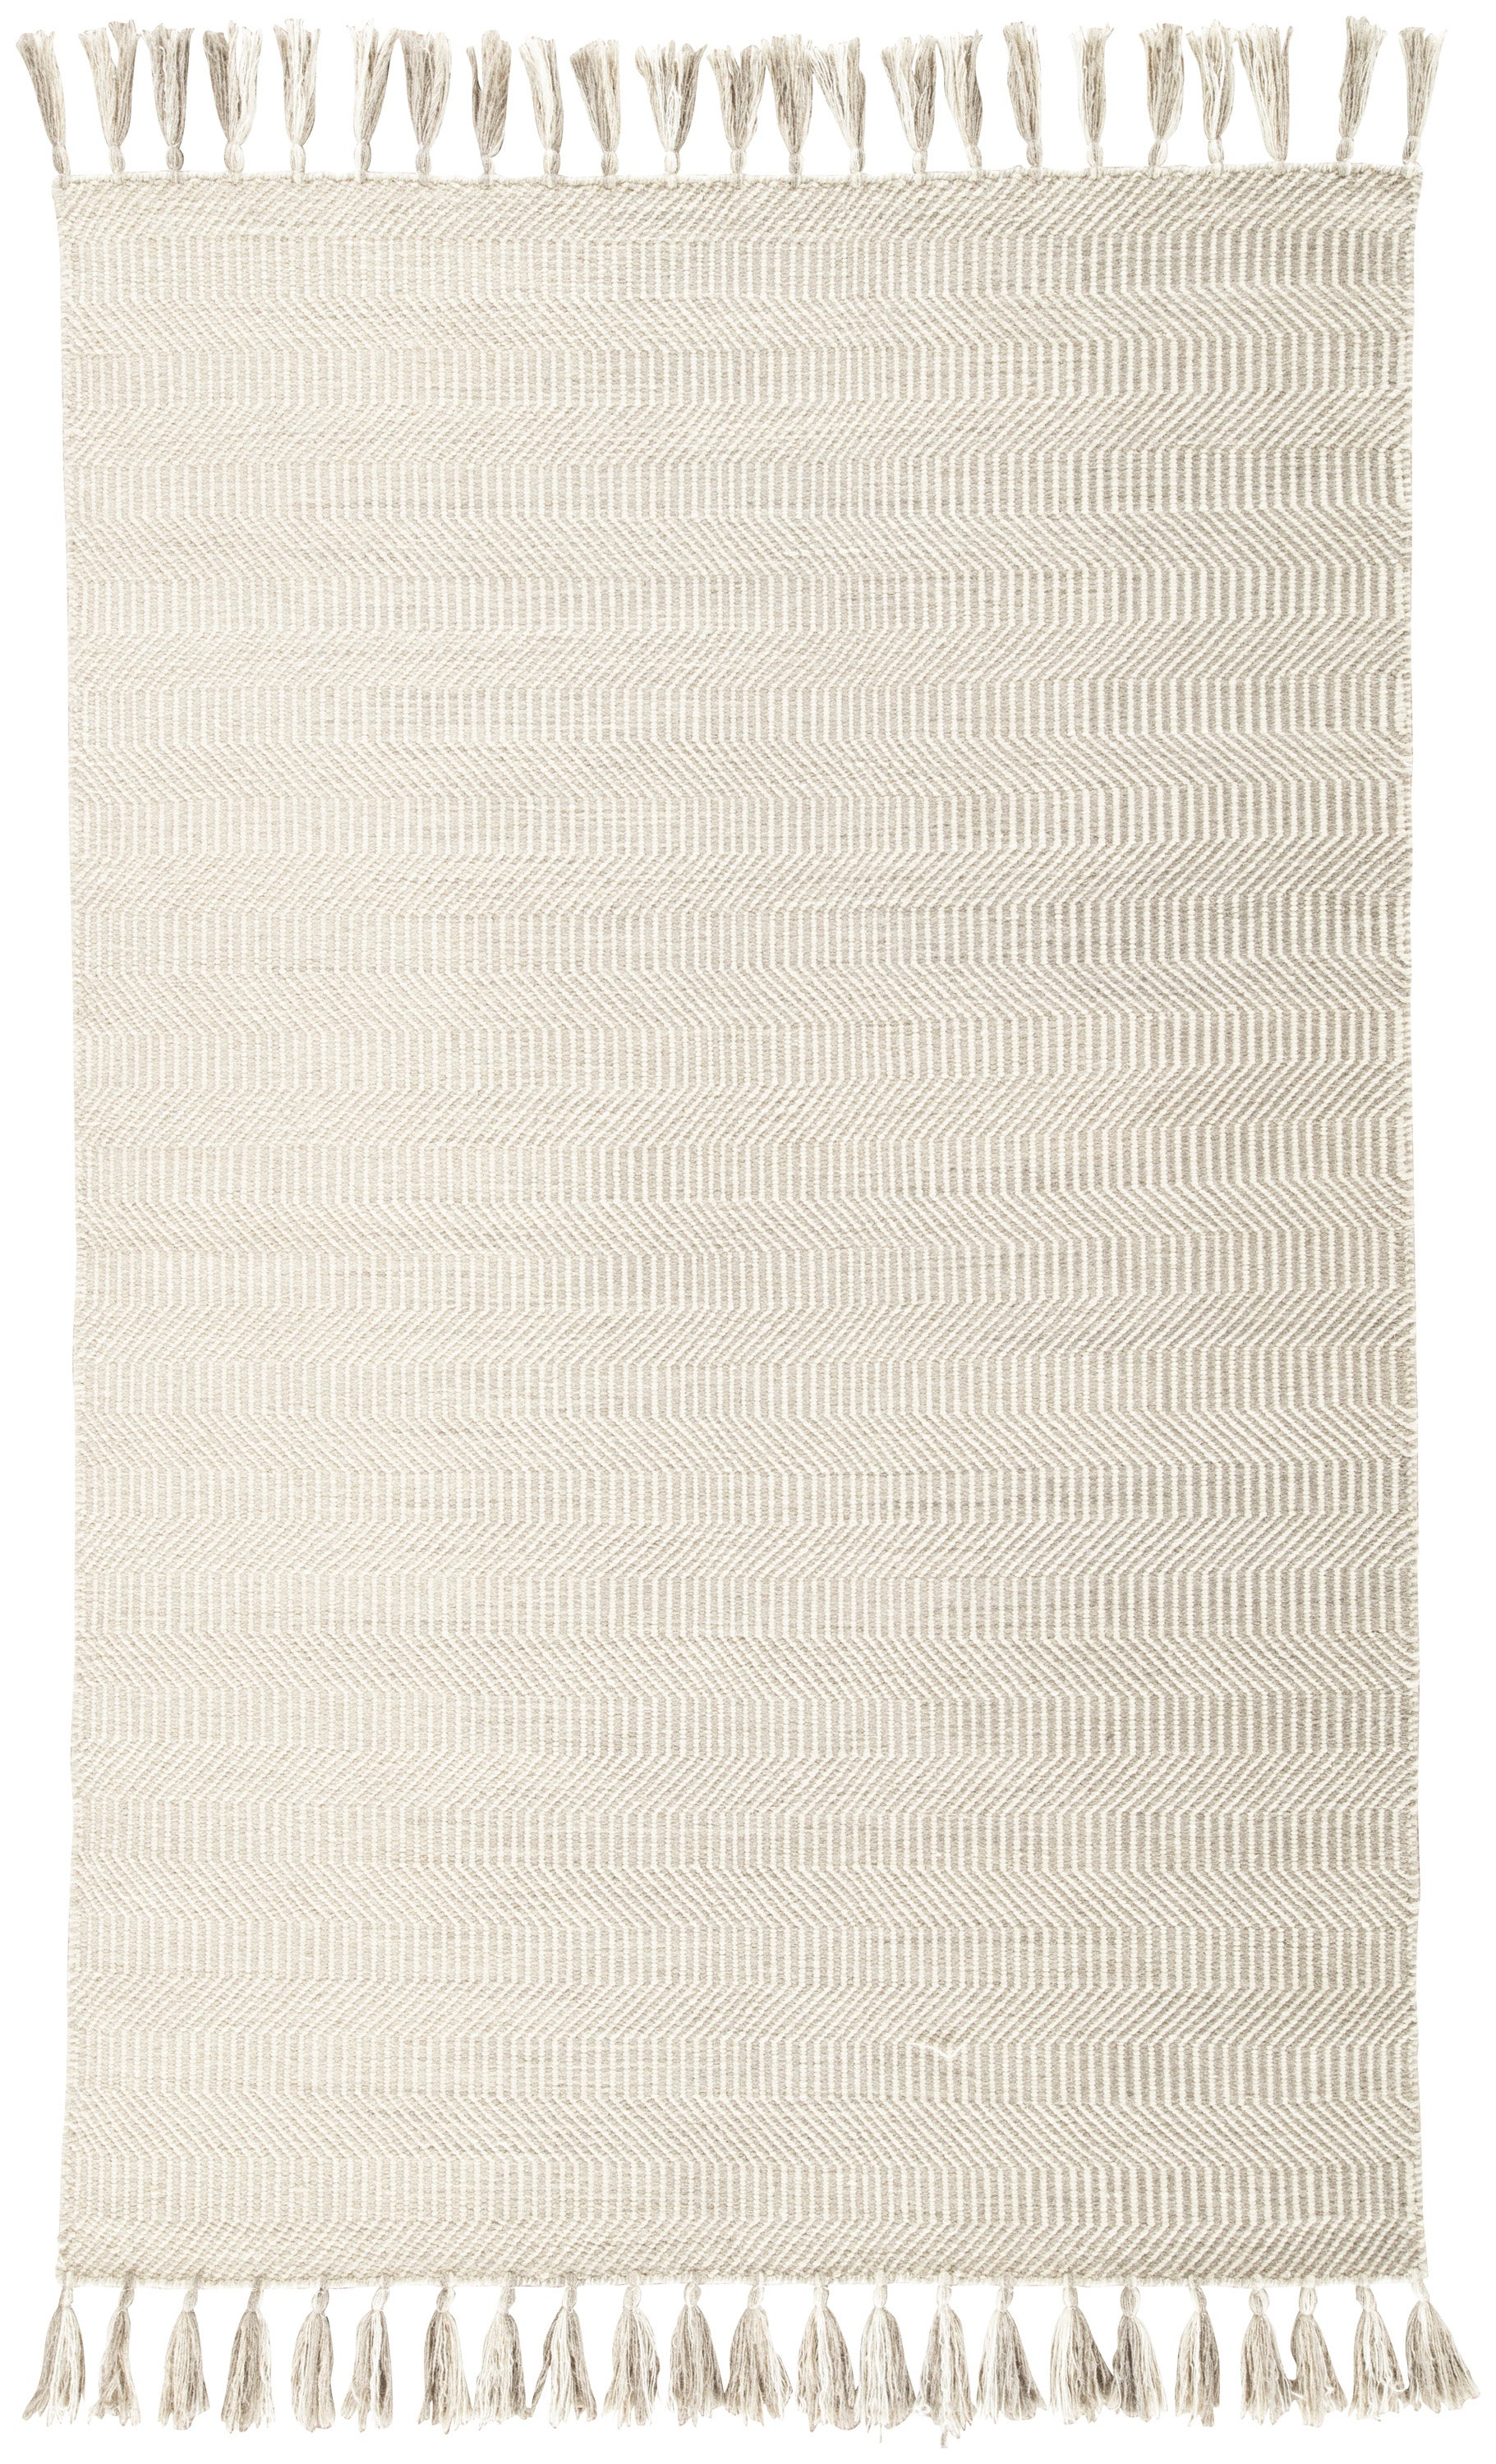 Rectangle Cream Geometric Hand Woven Wool Persian & Moroccan recommended for Bedroom, Bathroom, Dining Room, Office, Hallway, Living Room